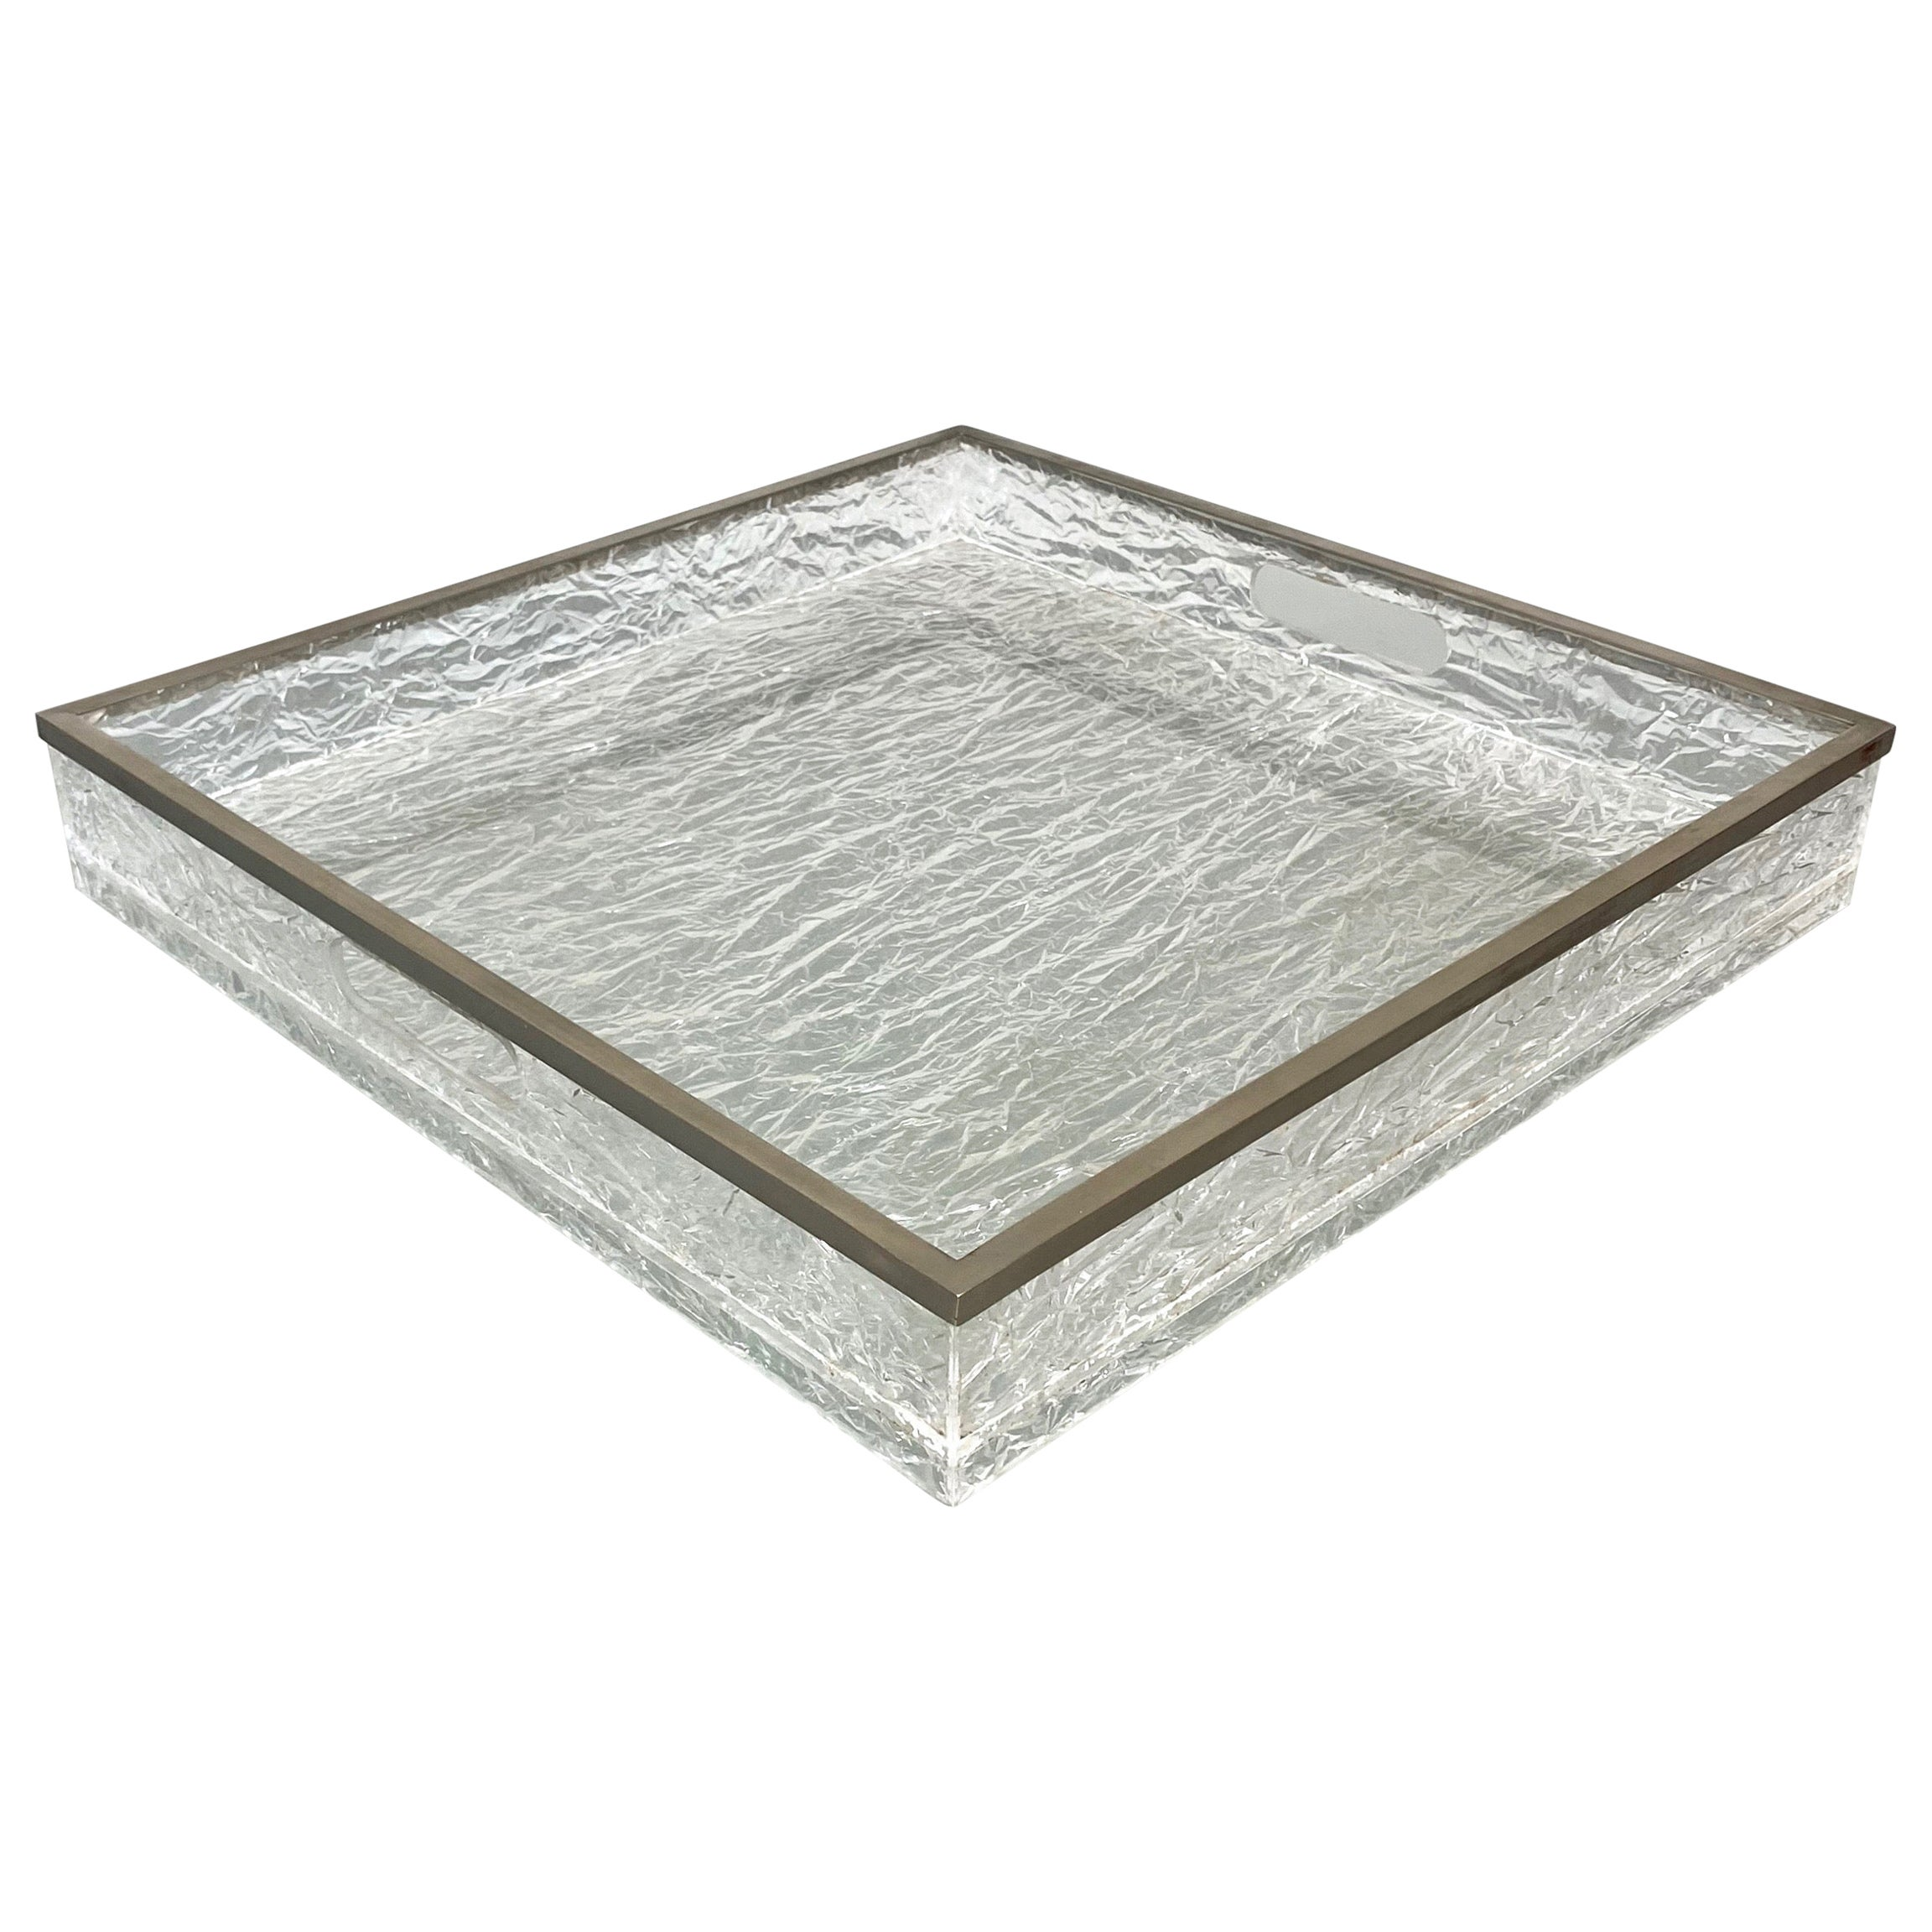 Centerpiece Serving Tray Ice Effect Lucite Nickel Willy Rizzo, Italy, 1970s